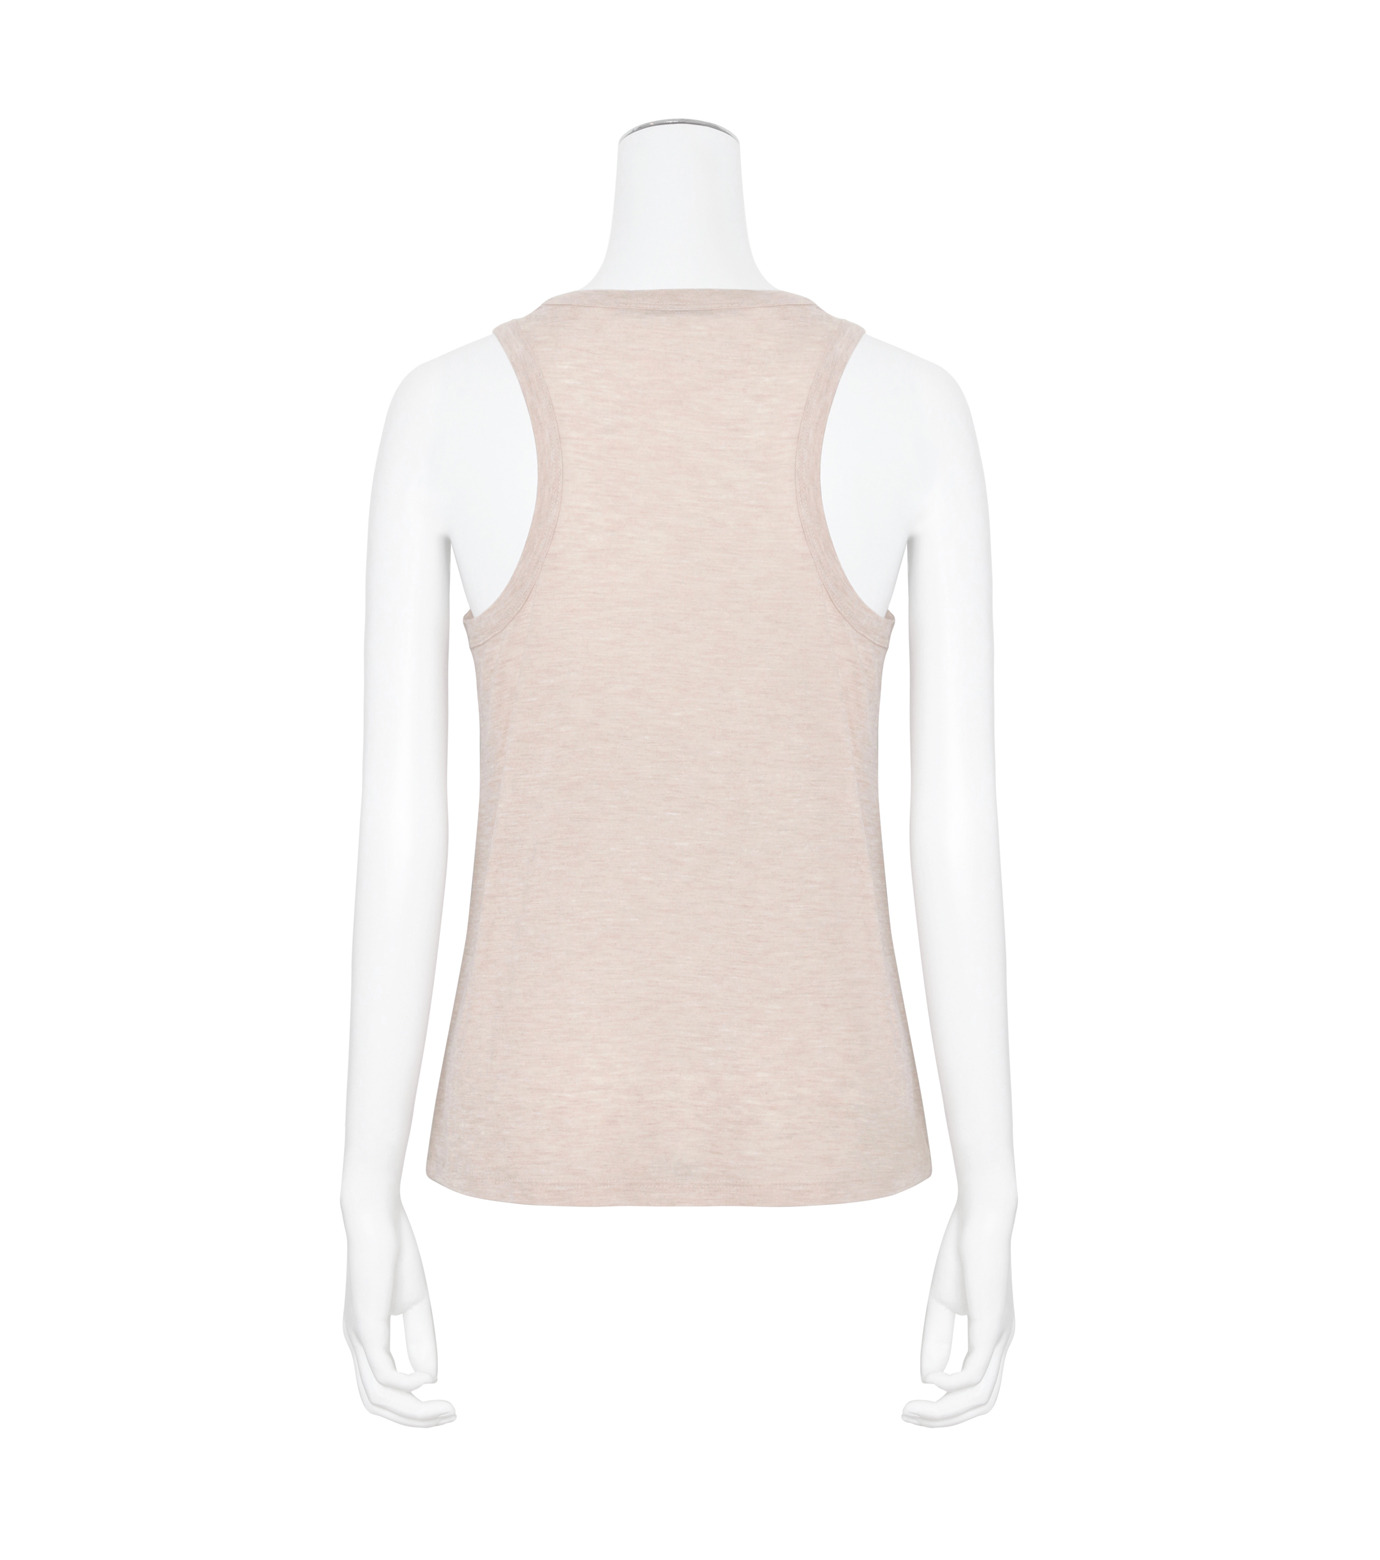 T by Alexander Wang(ティーバイ アレキサンダーワン)のJersey Tank w/Pkt-LIGHT PINK(カットソー/cut and sewn)-400128R17-71 拡大詳細画像2